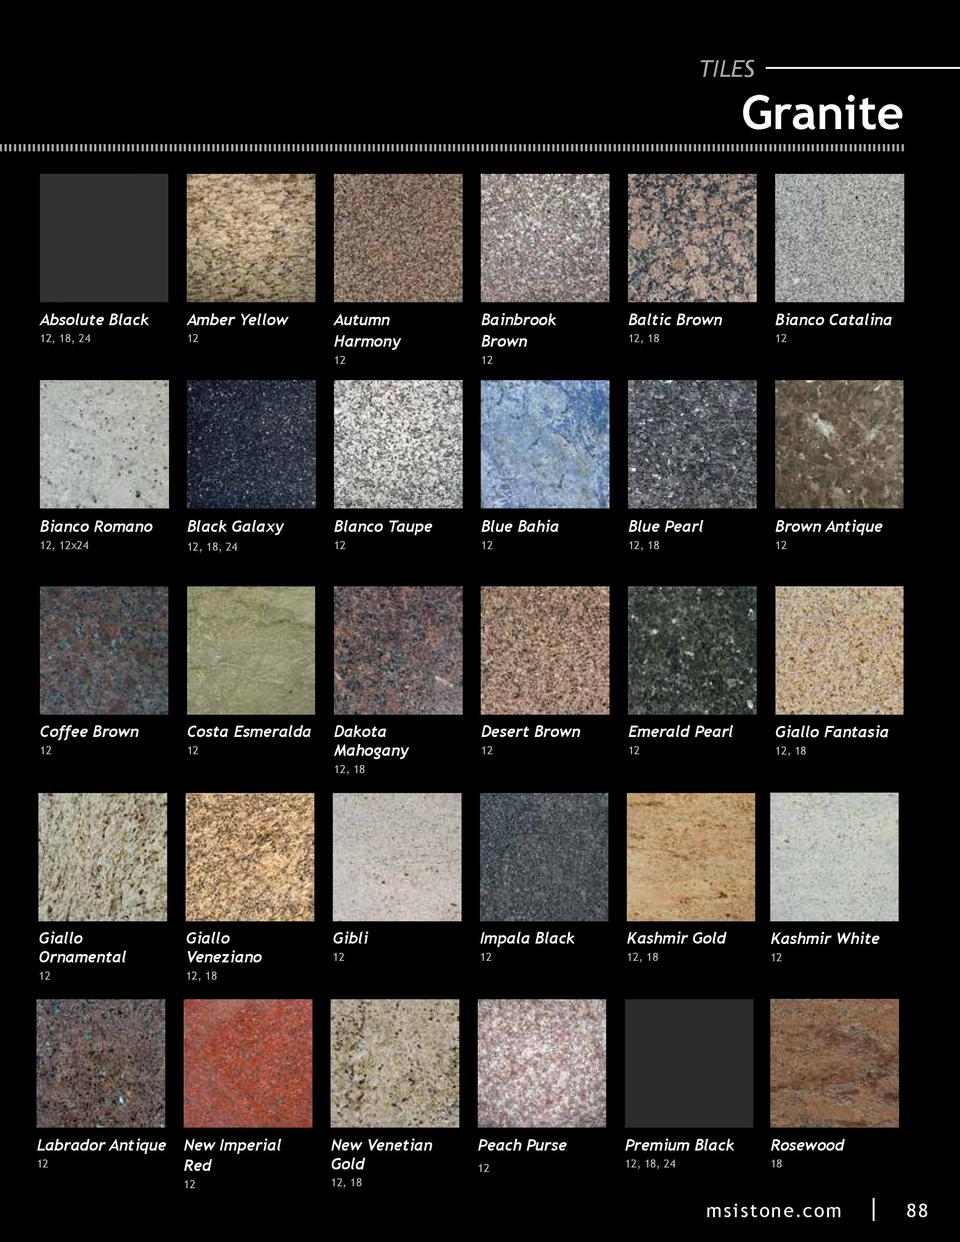 TILES  Granite  Absolute Black  Amber Yellow  12, 18, 24  12  Autumn Harmony  Bainbrook Brown  12  Baltic Brown  Bianco Ca...